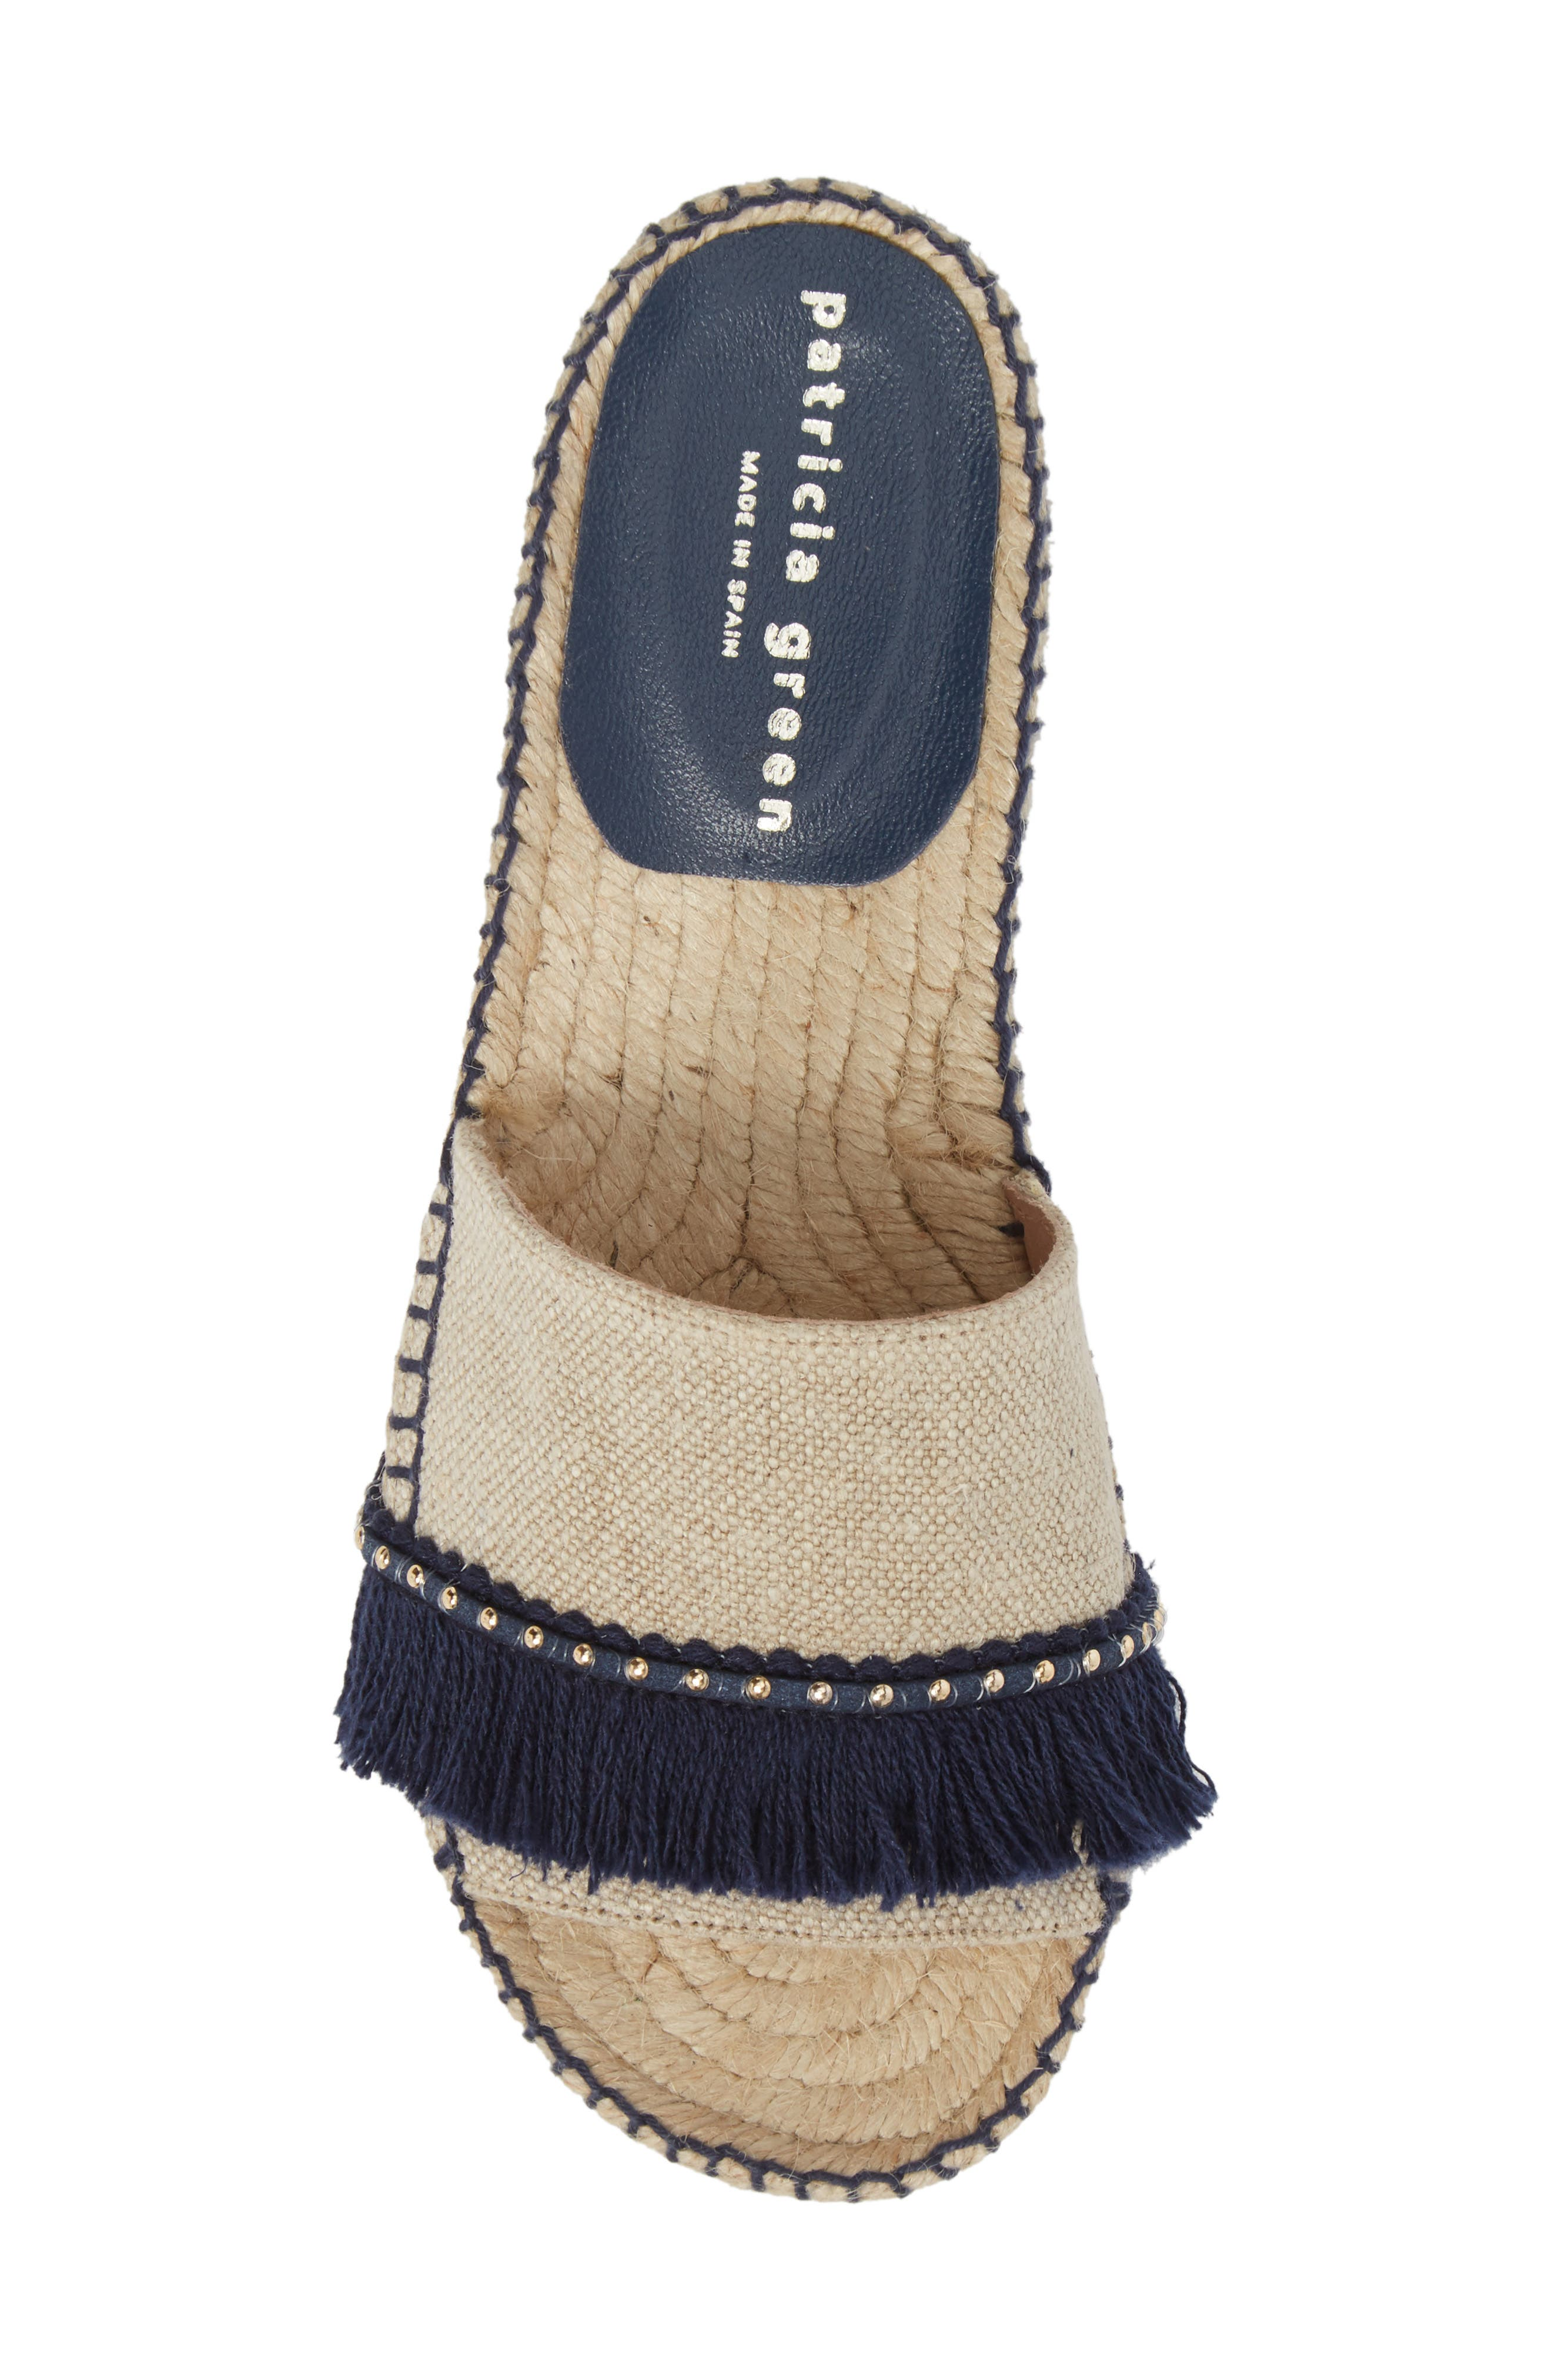 Bahama Espadrille Sandal,                             Alternate thumbnail 5, color,                             Navy Leather